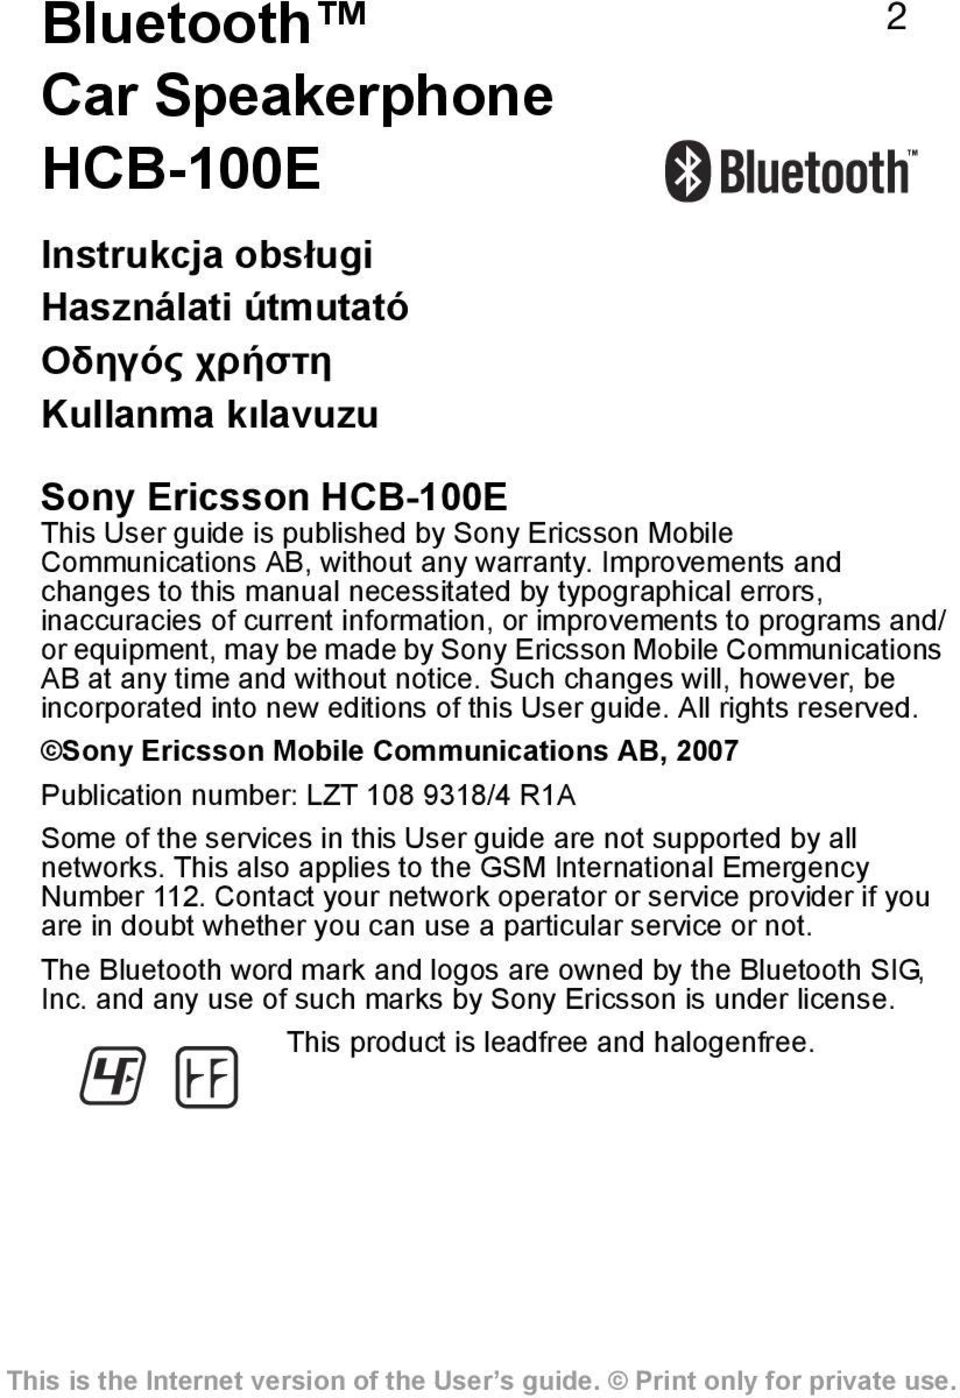 Improvements and changes to this manual necessitated by typographical errors, inaccuracies of current information, or improvements to programs and/ or equipment, may be made by Sony Ericsson Mobile